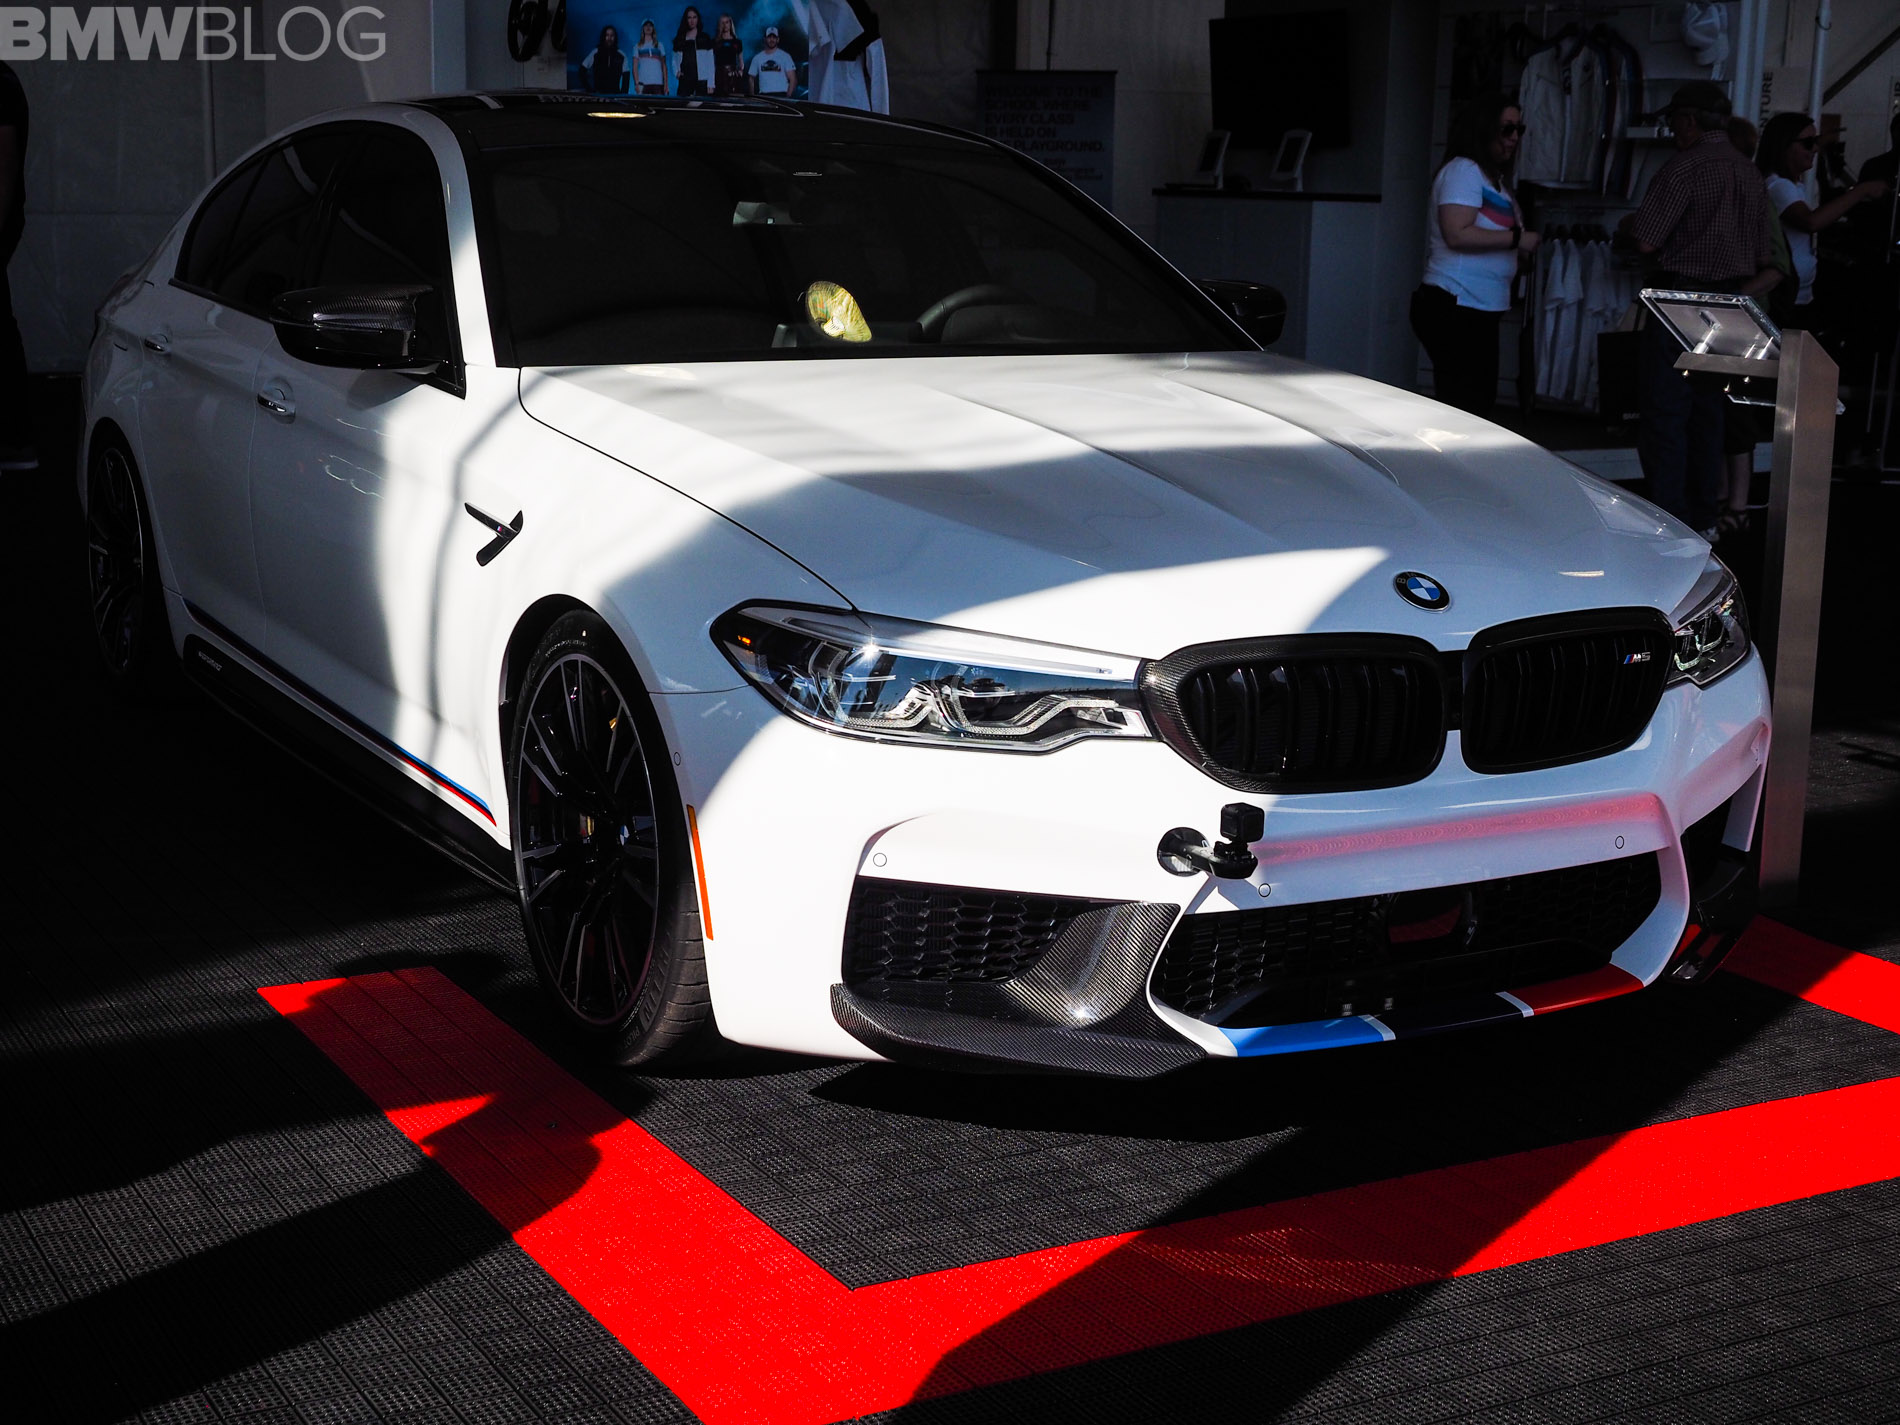 2017 sema live photos bmw f90 m5 with m performance partsthat means it can accelerate from 0 60 mph in 3 2 seconds, making it the fastest production bmw ever made 2017 semabmw m5m performance